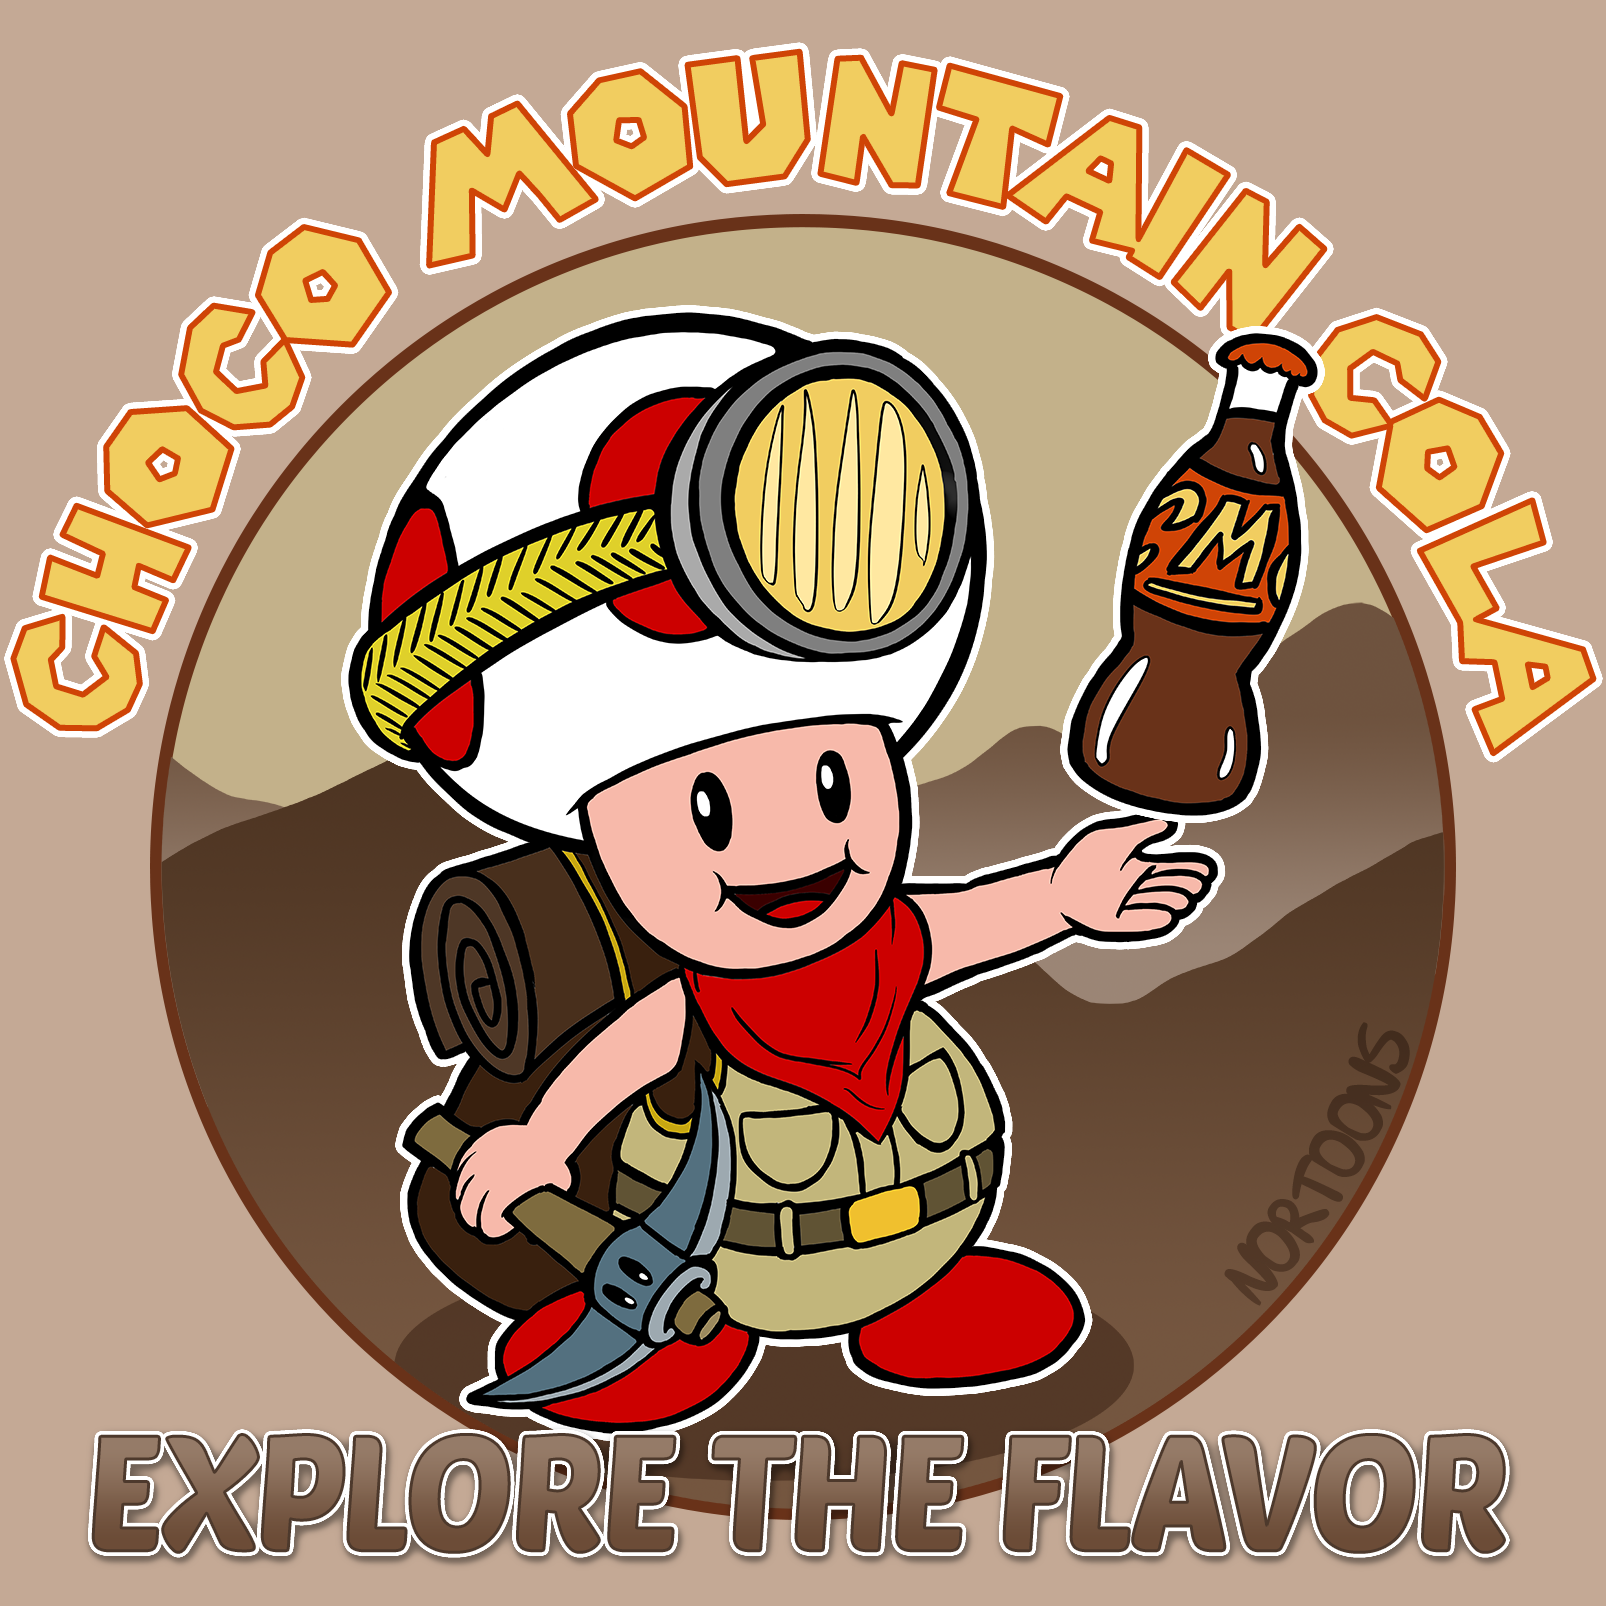 Choco Mountain Cola featuring Captain Toad